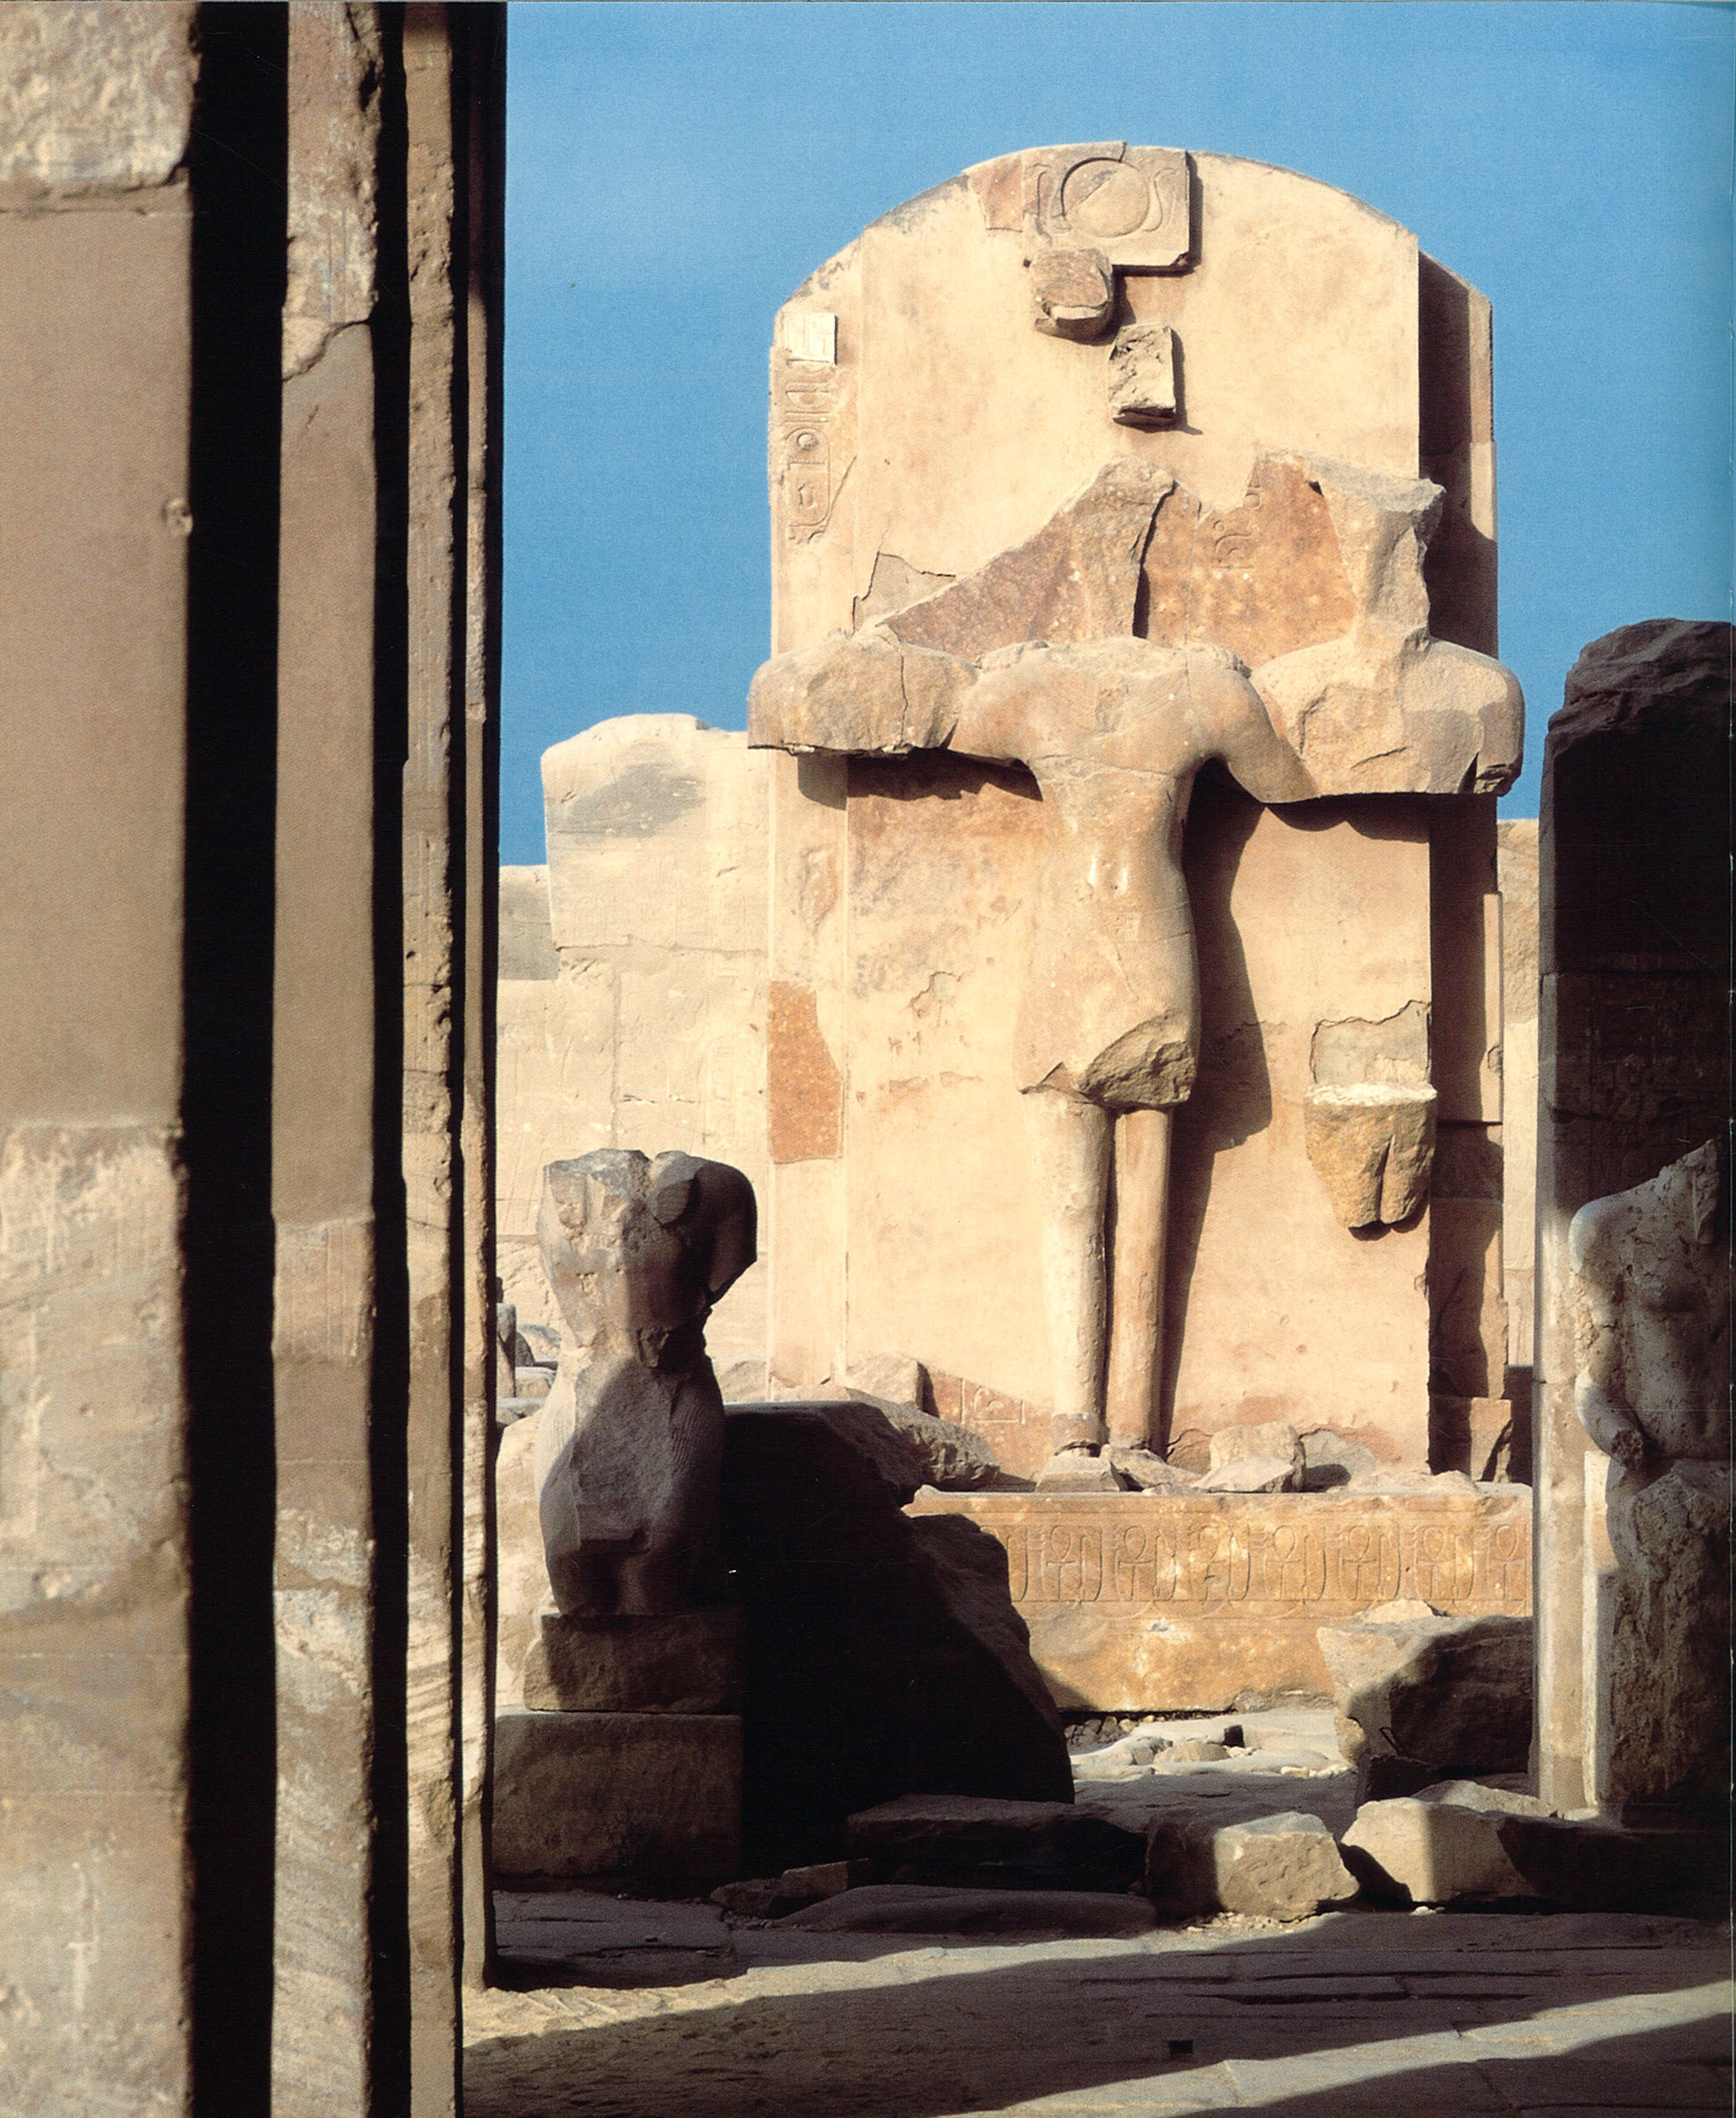 The Festival Hall ofThutmosis III in Karnak Temple. View to the north. The Festival Hall was converted in the late antique period to a church.